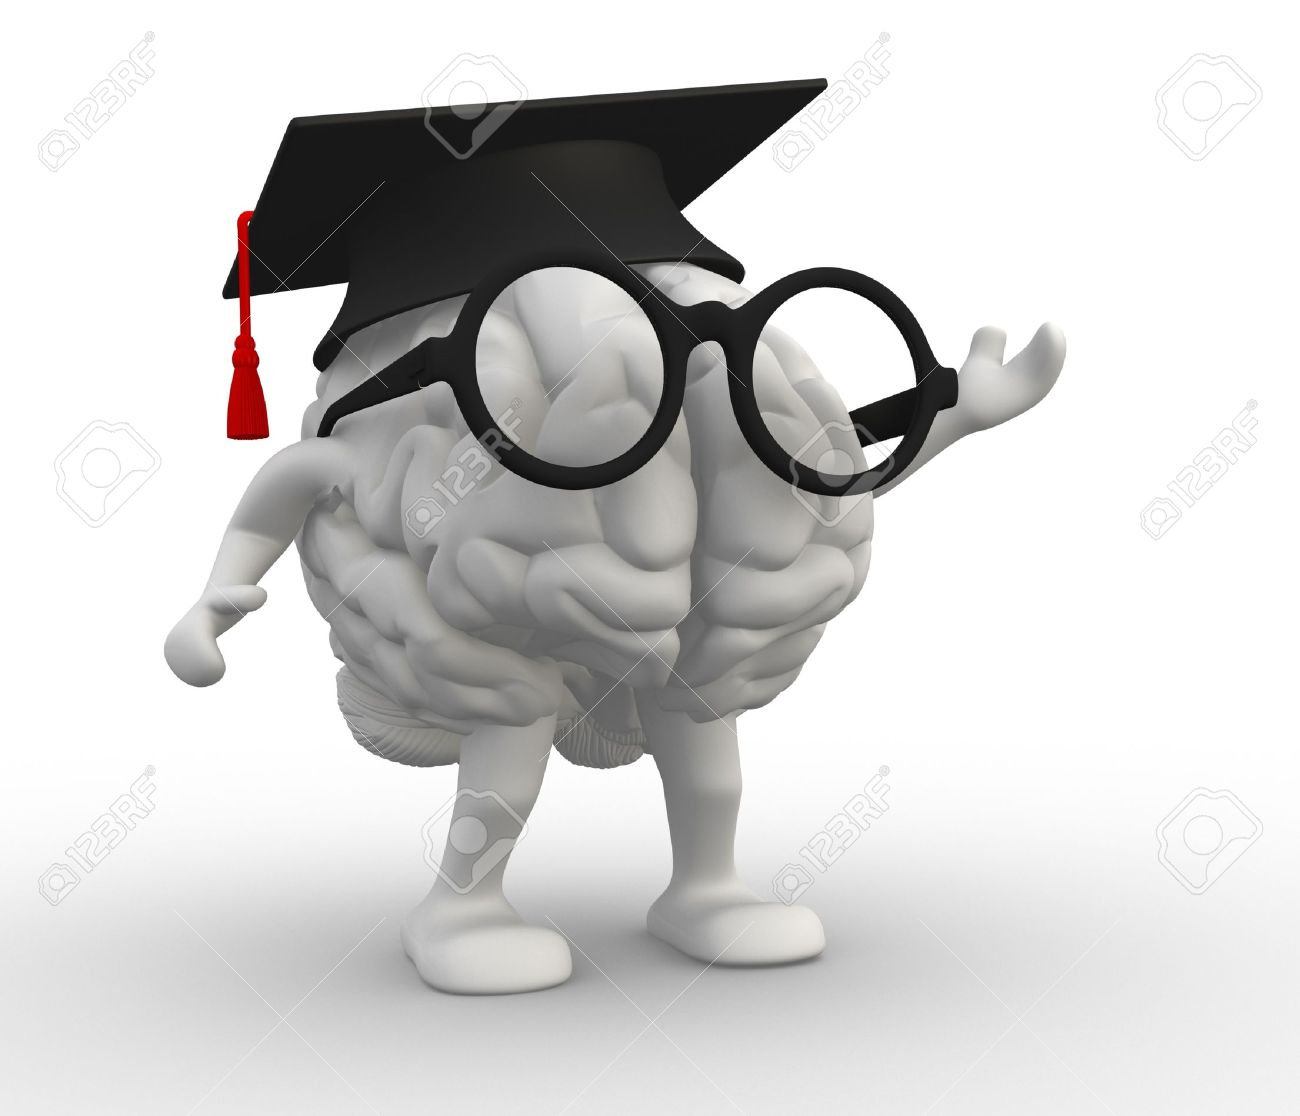 3d human brain with arms and legs, Graduation cap Standard-Bild - 17640034